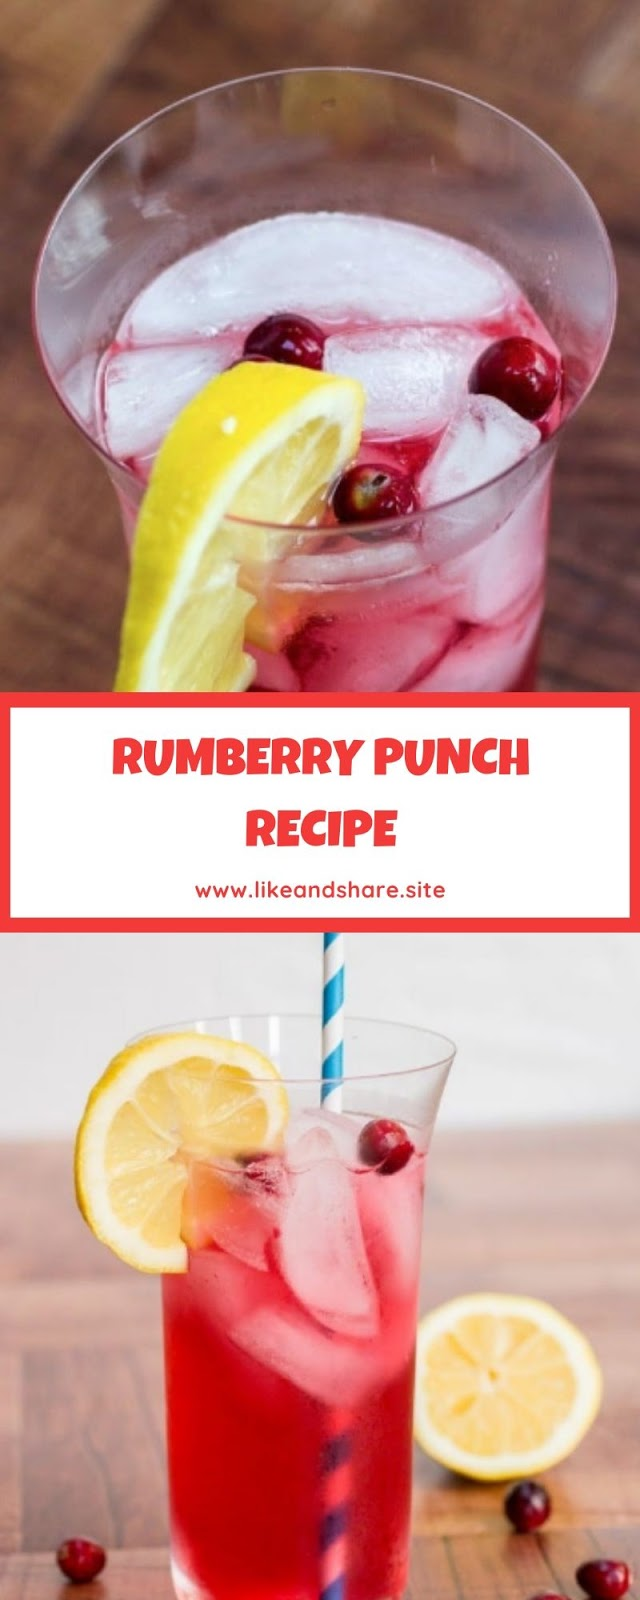 RUMBERRY PUNCH RECIPE